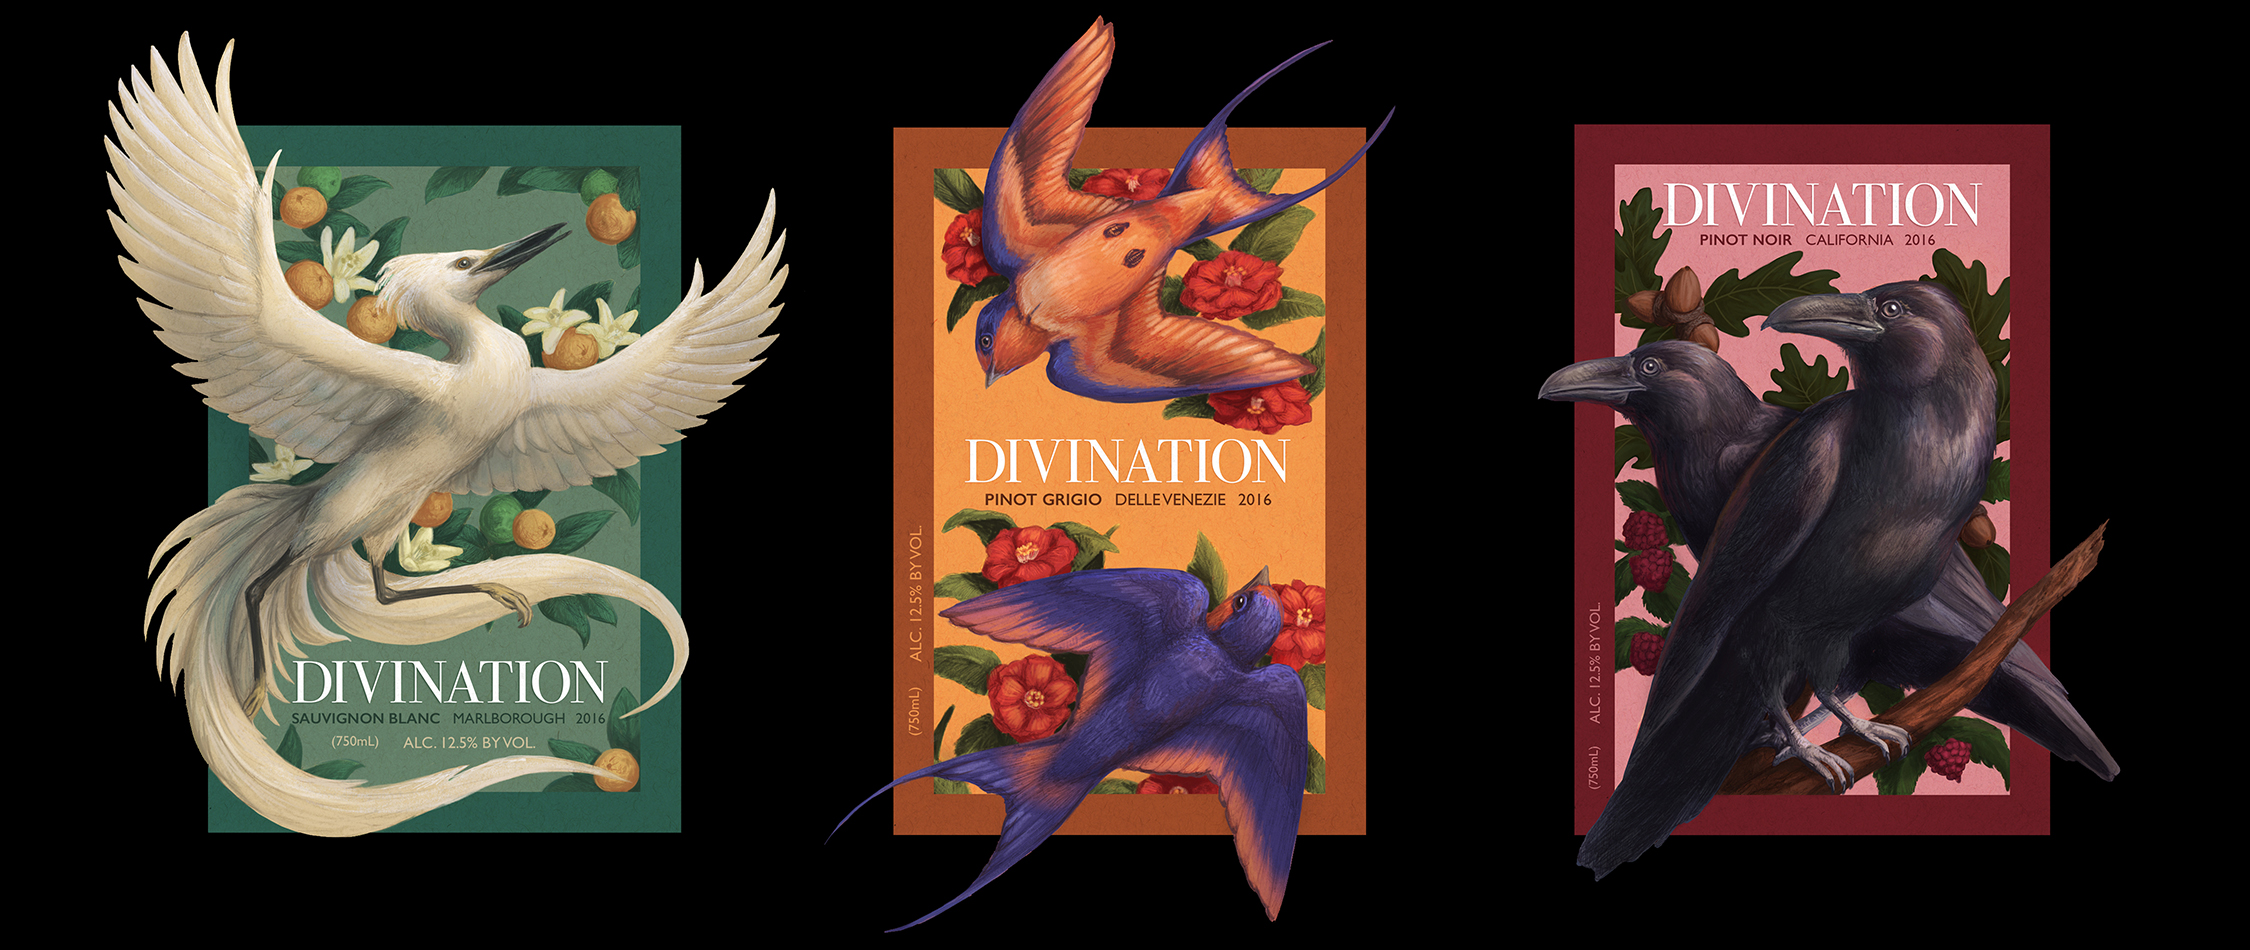 Divination with Type